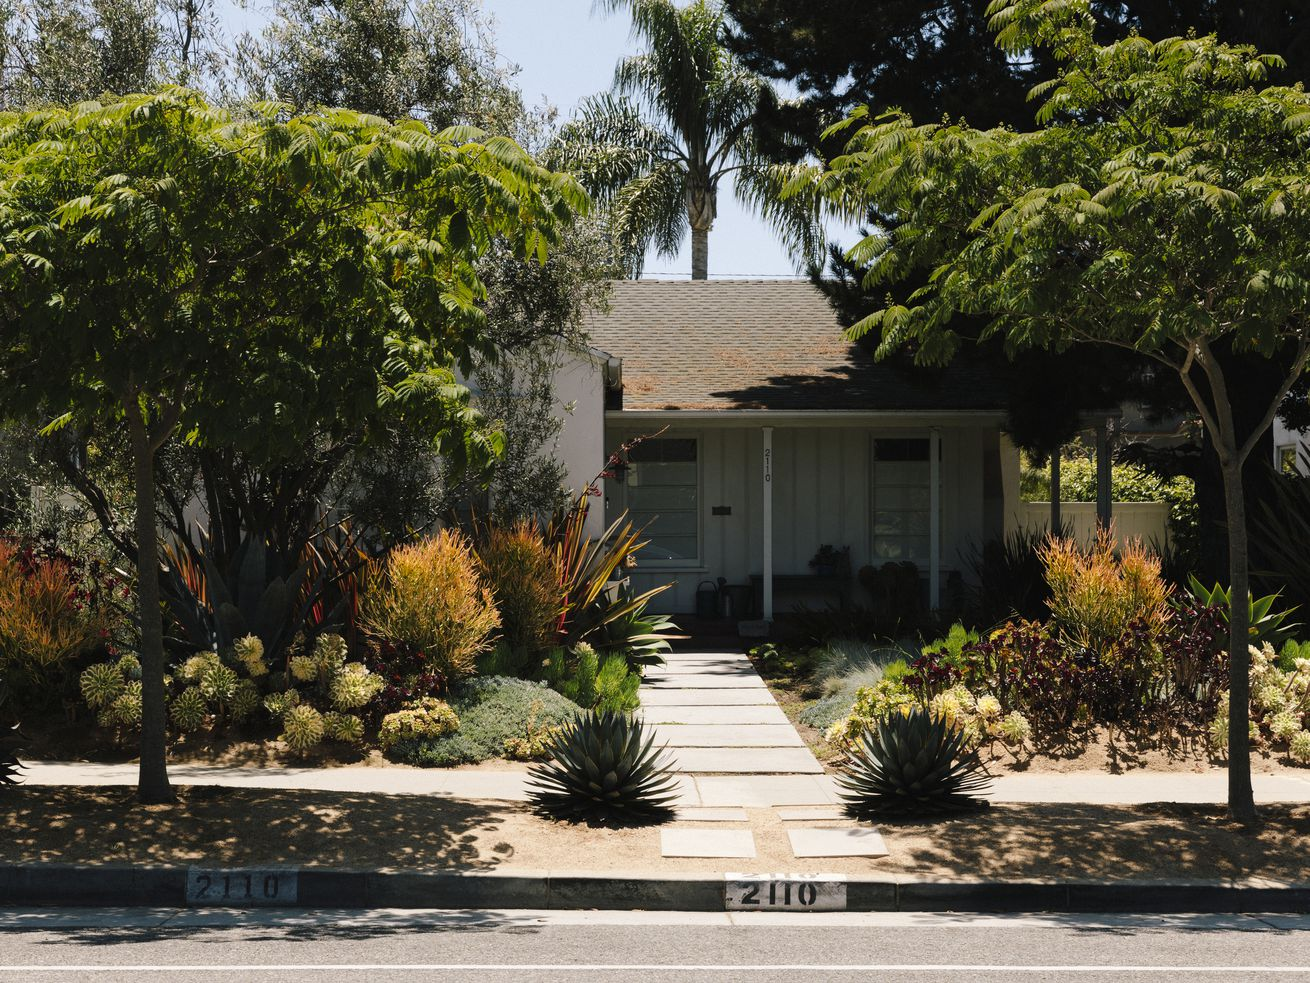 A small white-colored ranch house partially hidden behind trees and tall succulents